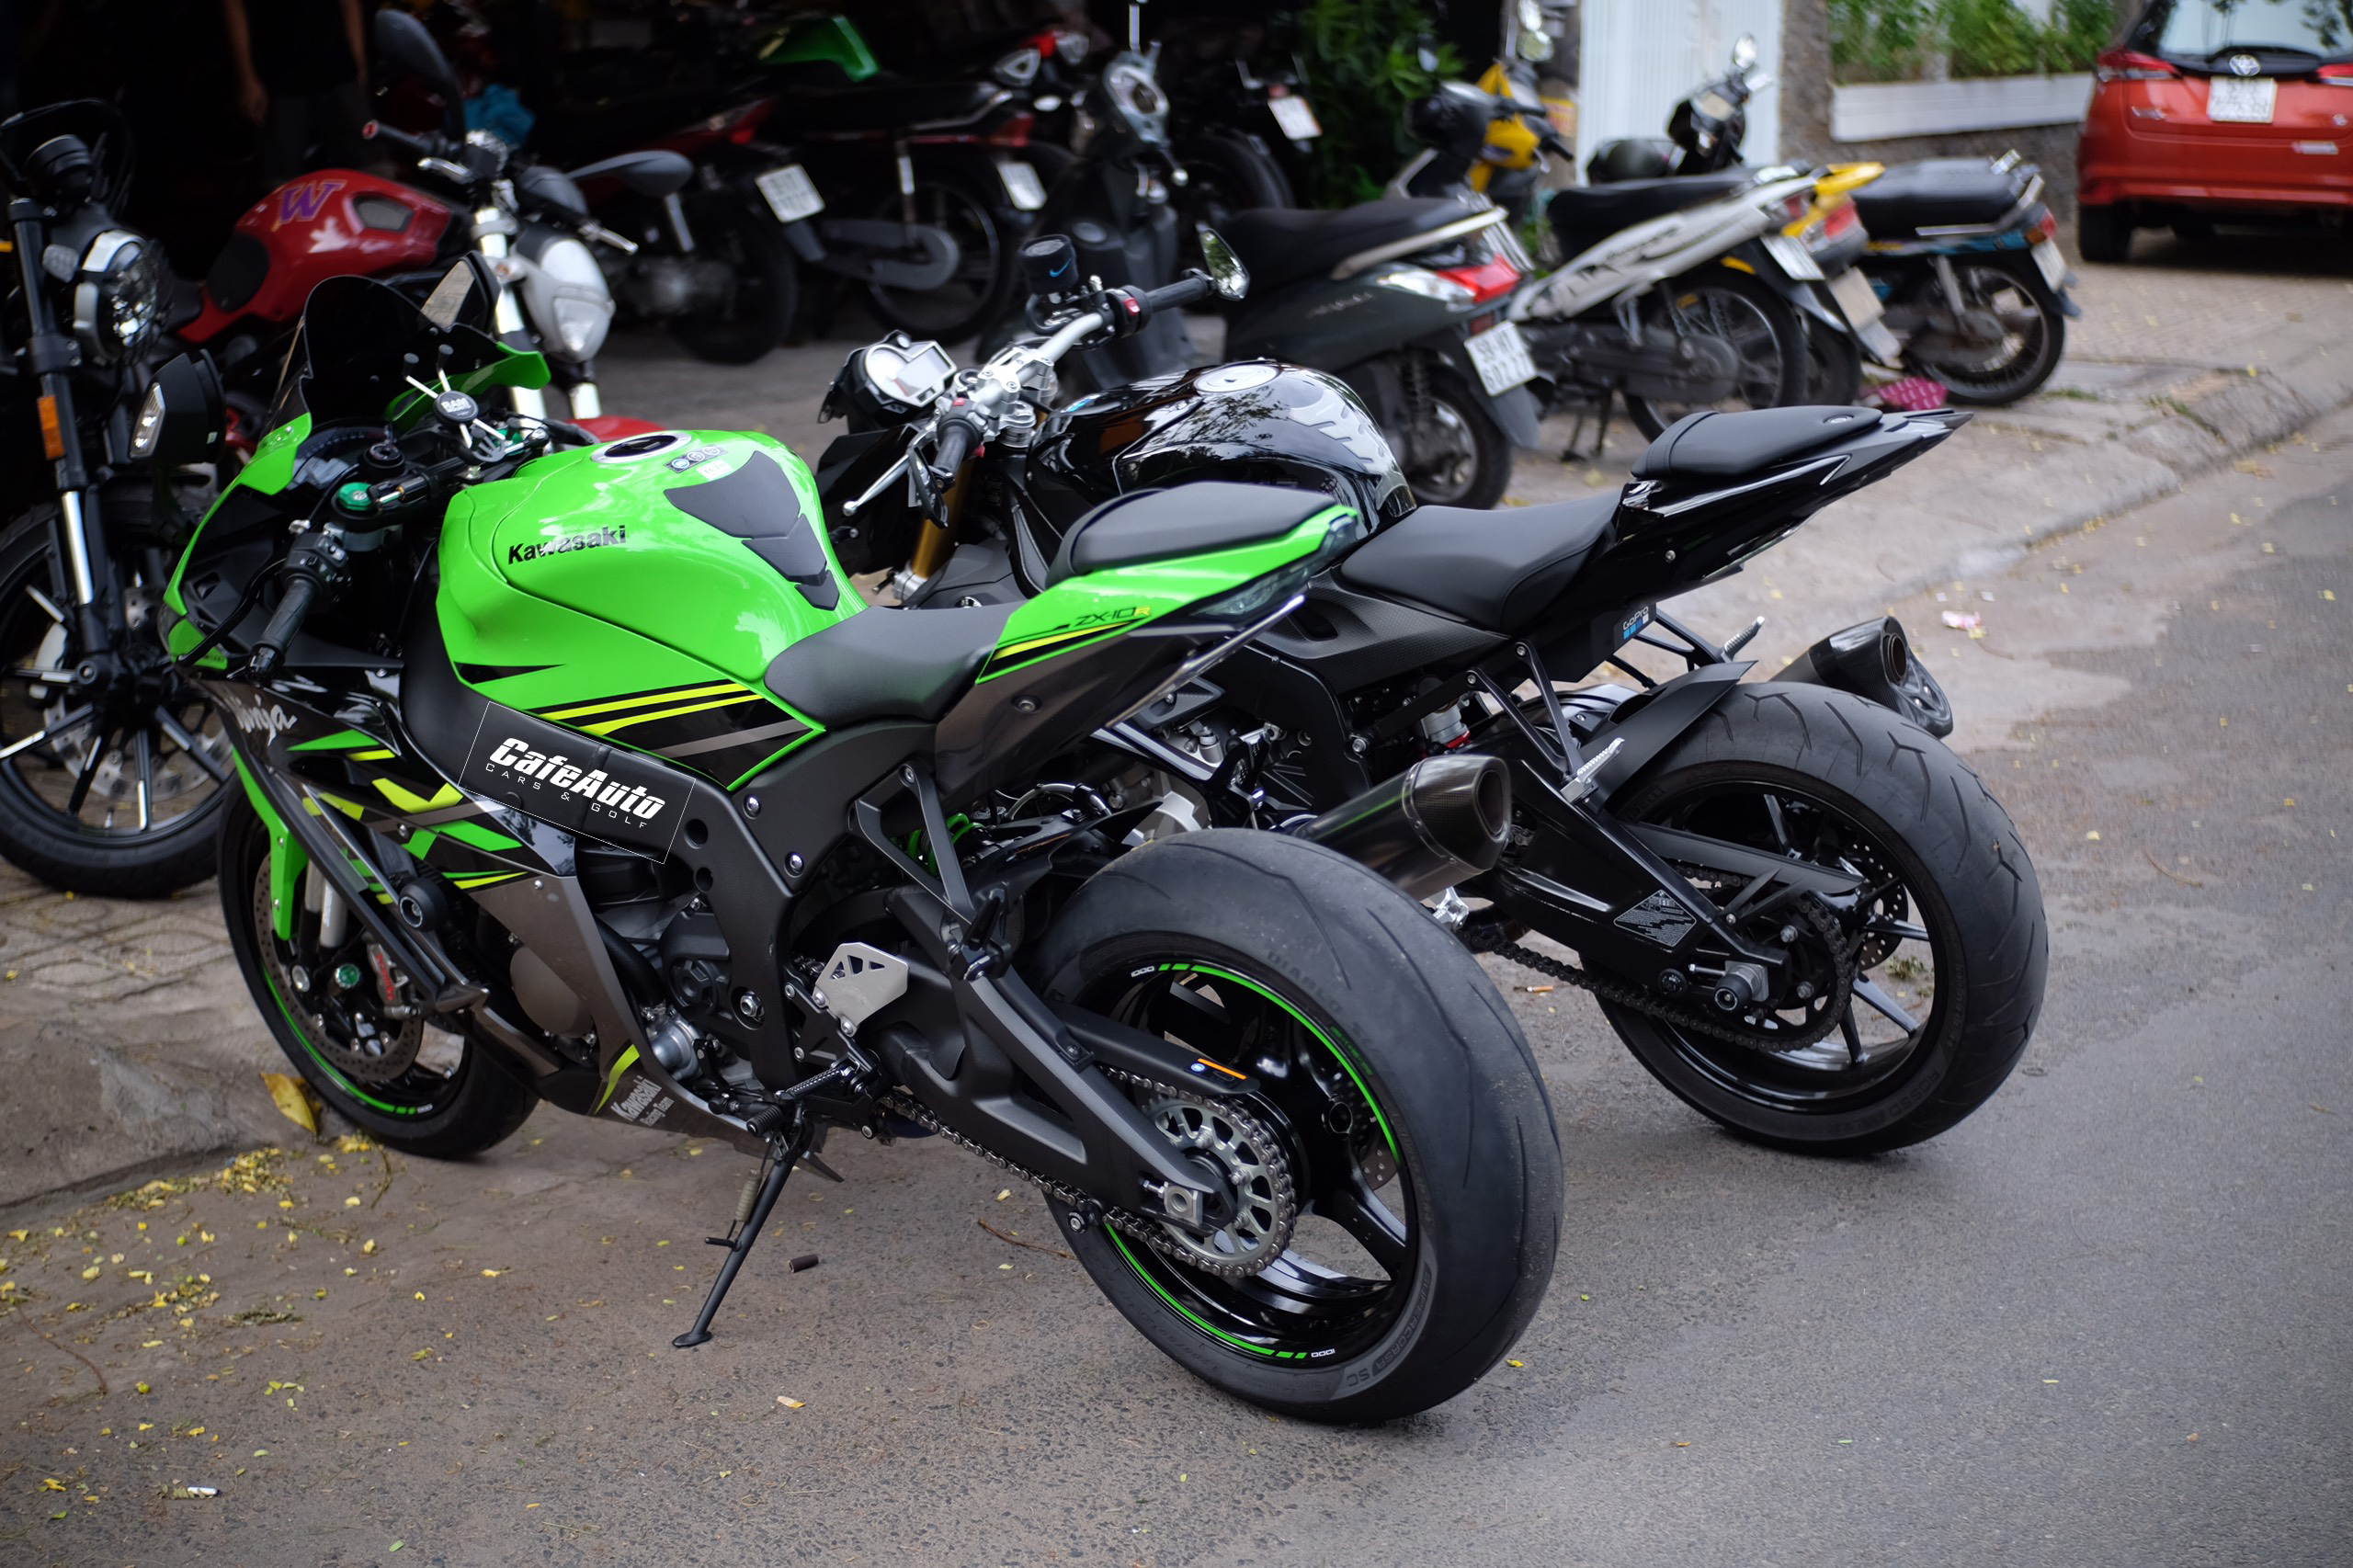 ZX10R-cafeautovn-10